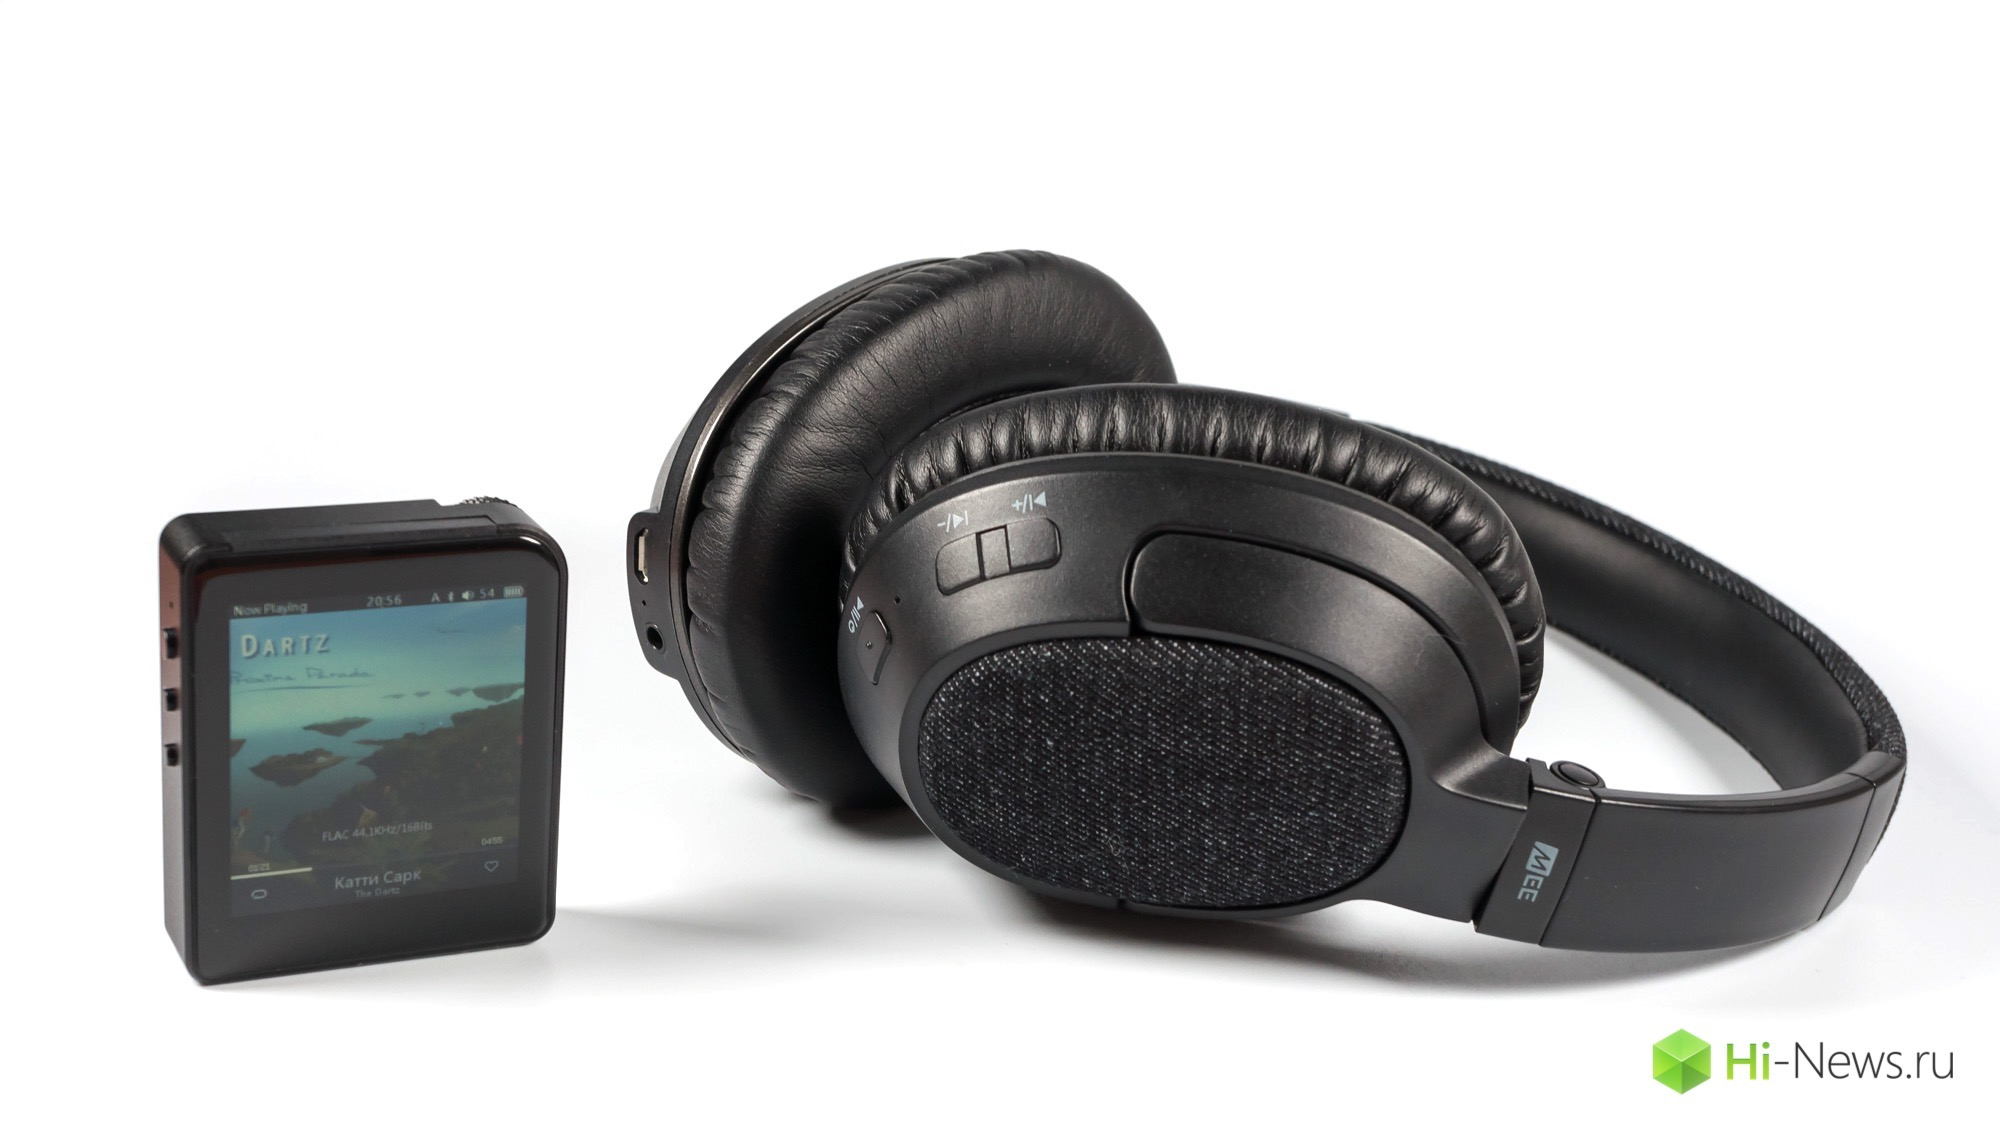 Browse wireless headset MEEAudio Matrix3